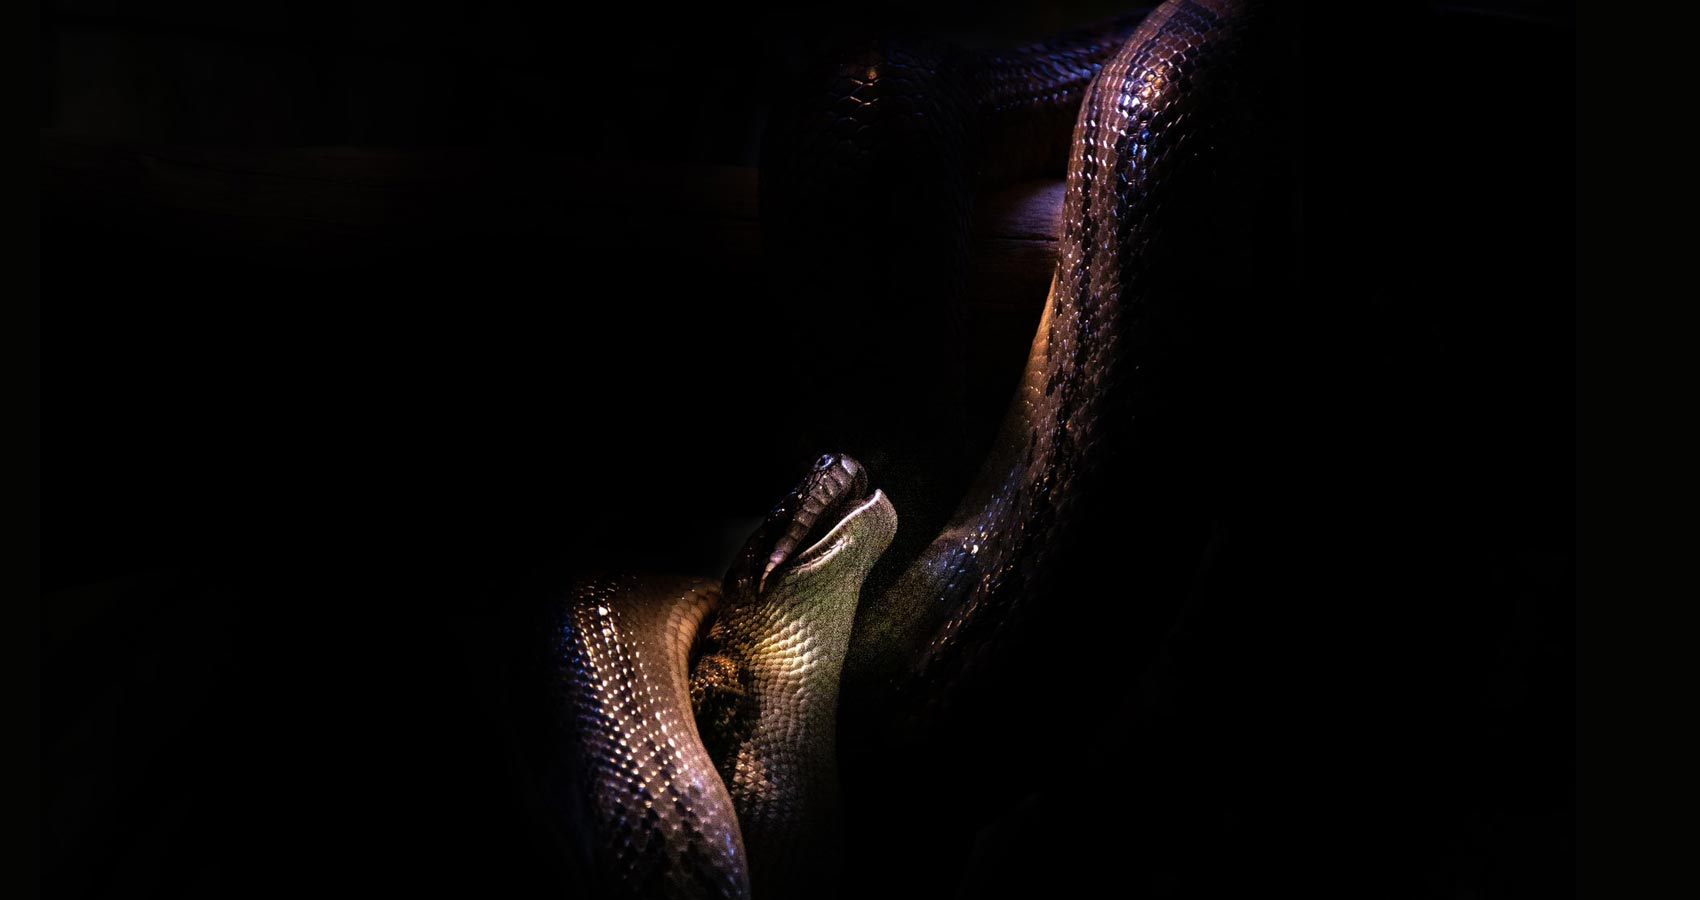 Tomorrow There Is A Snake, short story by S.C. Denton at Spillwords.com